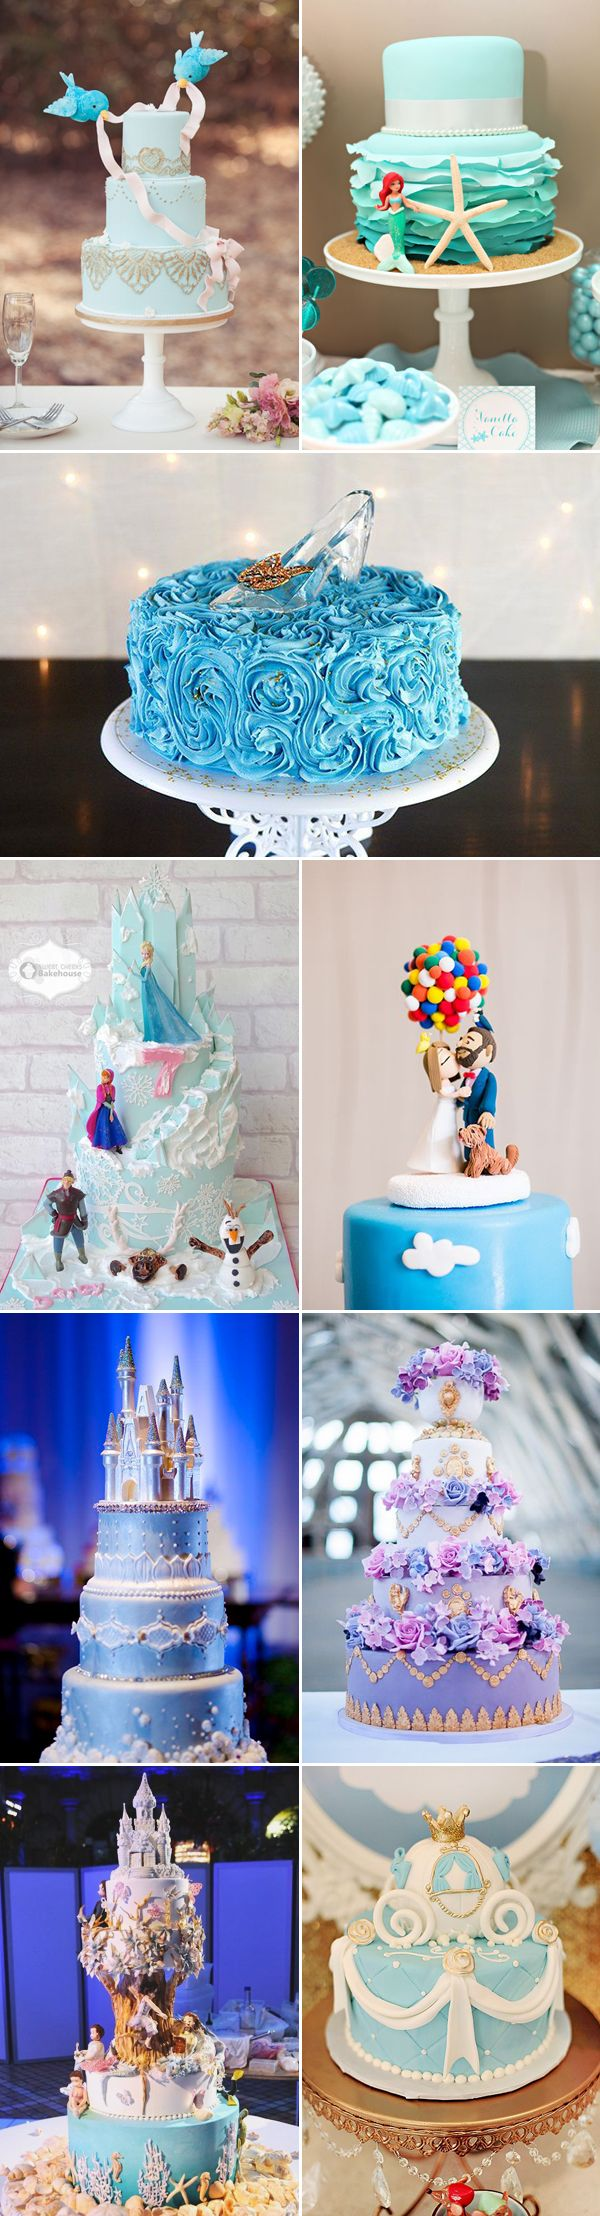 disney fairytale wedding cake topper 25 best ideas about disney wedding cakes on 13553